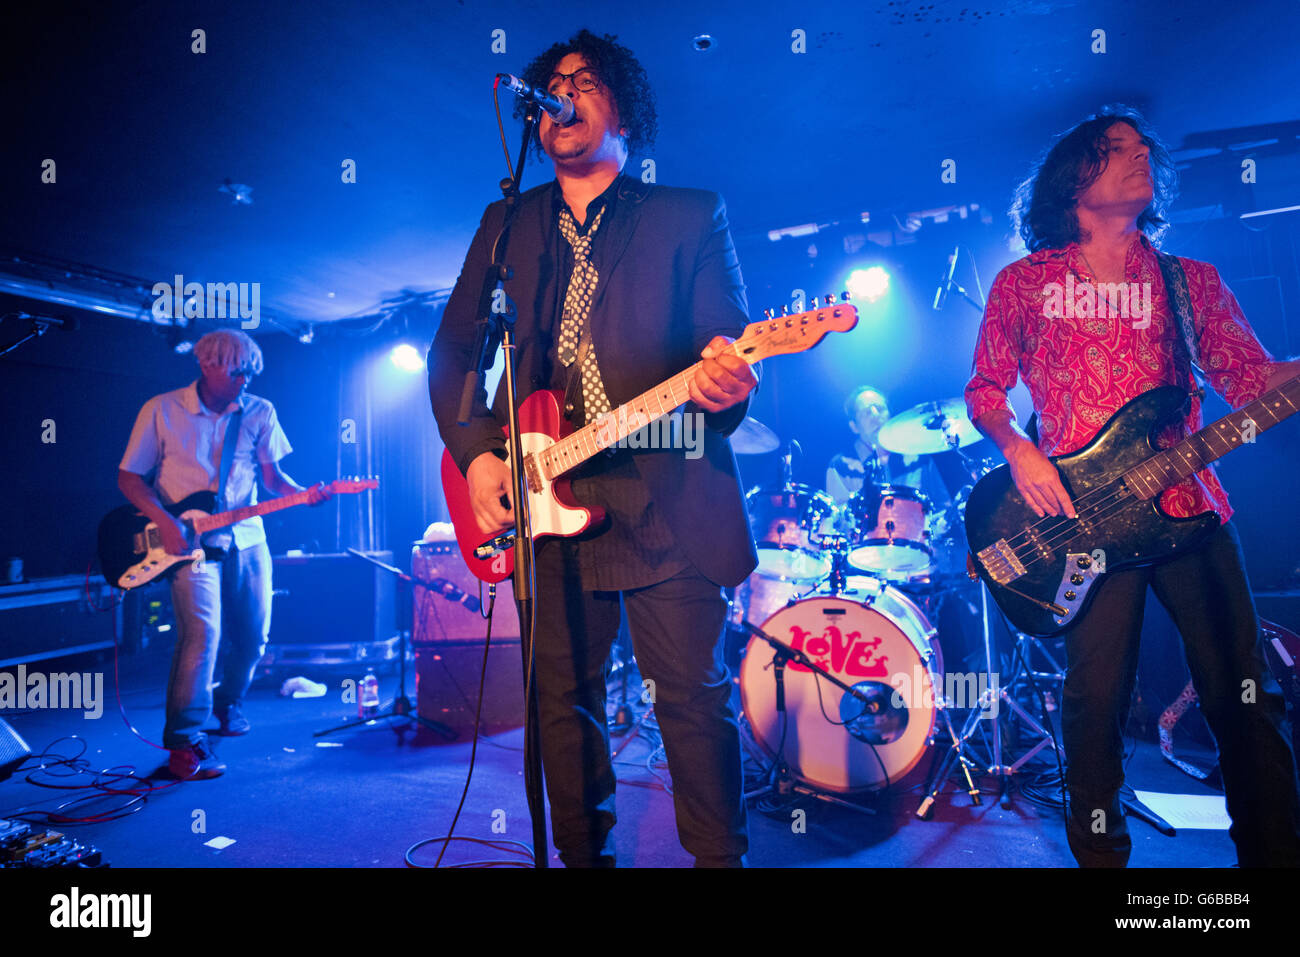 Manchester, UK. 23rd June, 2016. Love Revisited in concert at the Ruby Lounge, Manchester, UK. The band has reformed - Stock Image